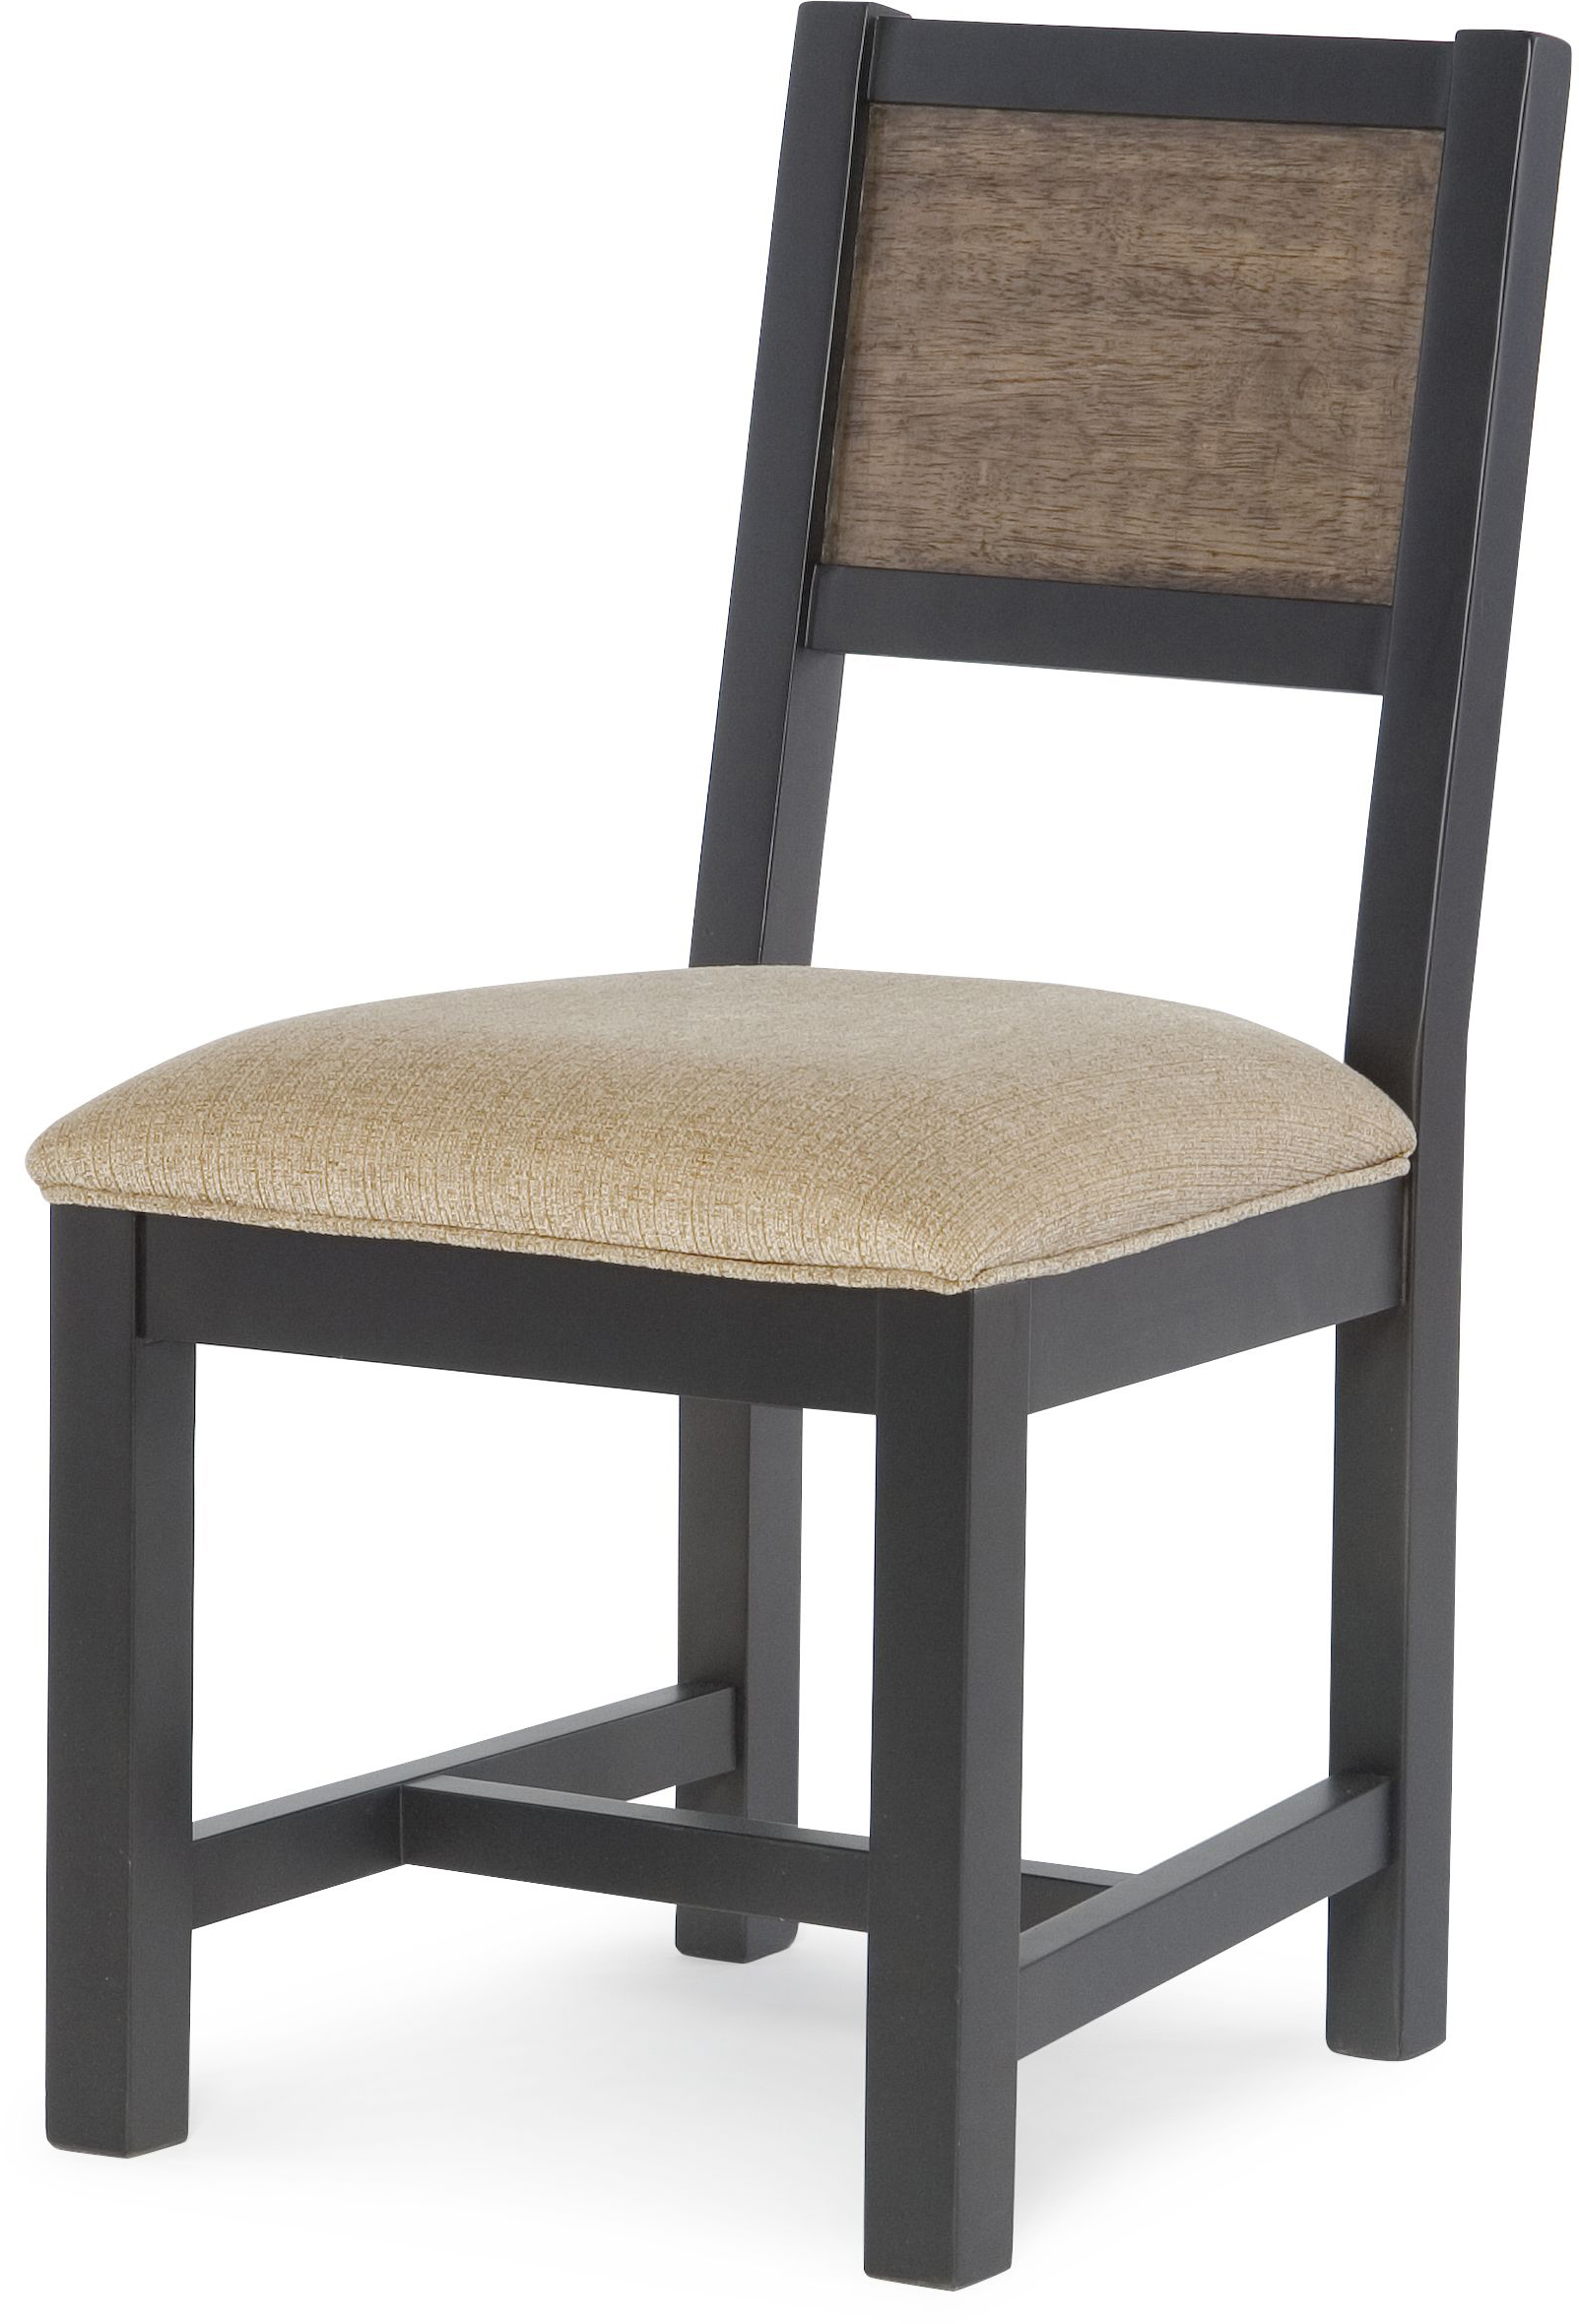 Desk Chair with Upholstered Seat